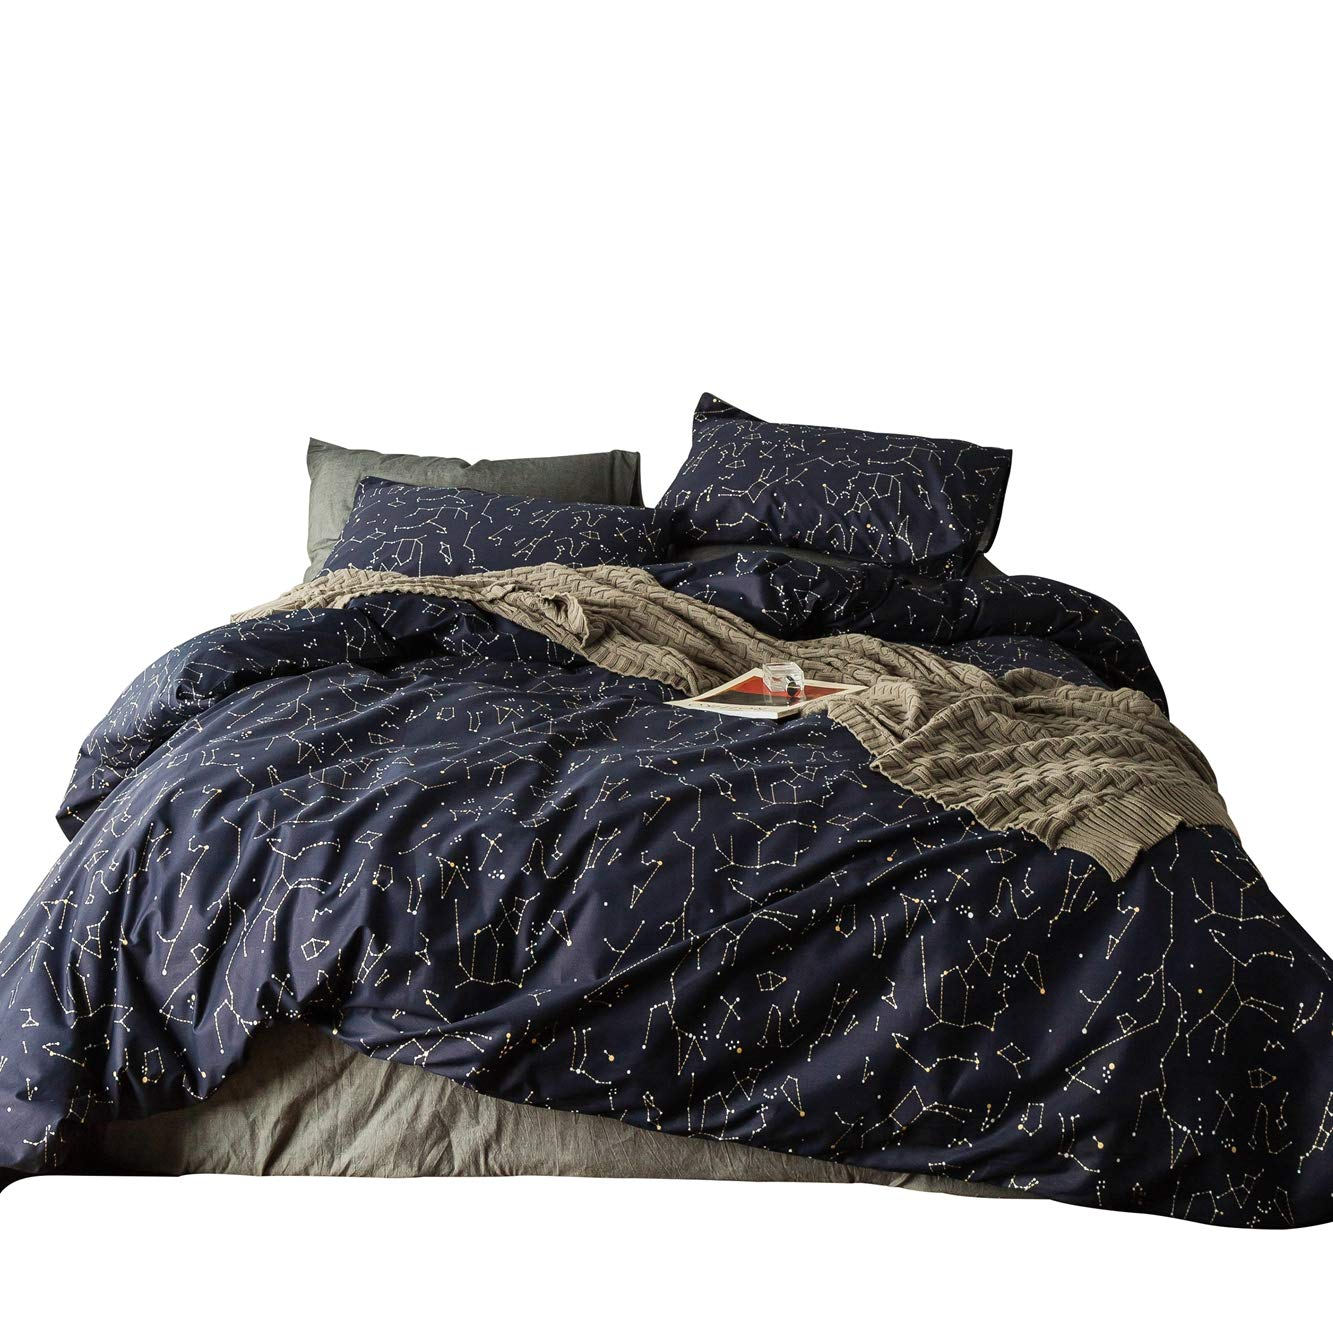 b845f877e1 SUSYBAO 3 Pieces Duvet Cover Set 100% Natural Cotton Queen Size Navy Blue  Constellation Print Bedding Set 1 Duvet Cover 2 Pillowcases Hotel Quality  Soft ...